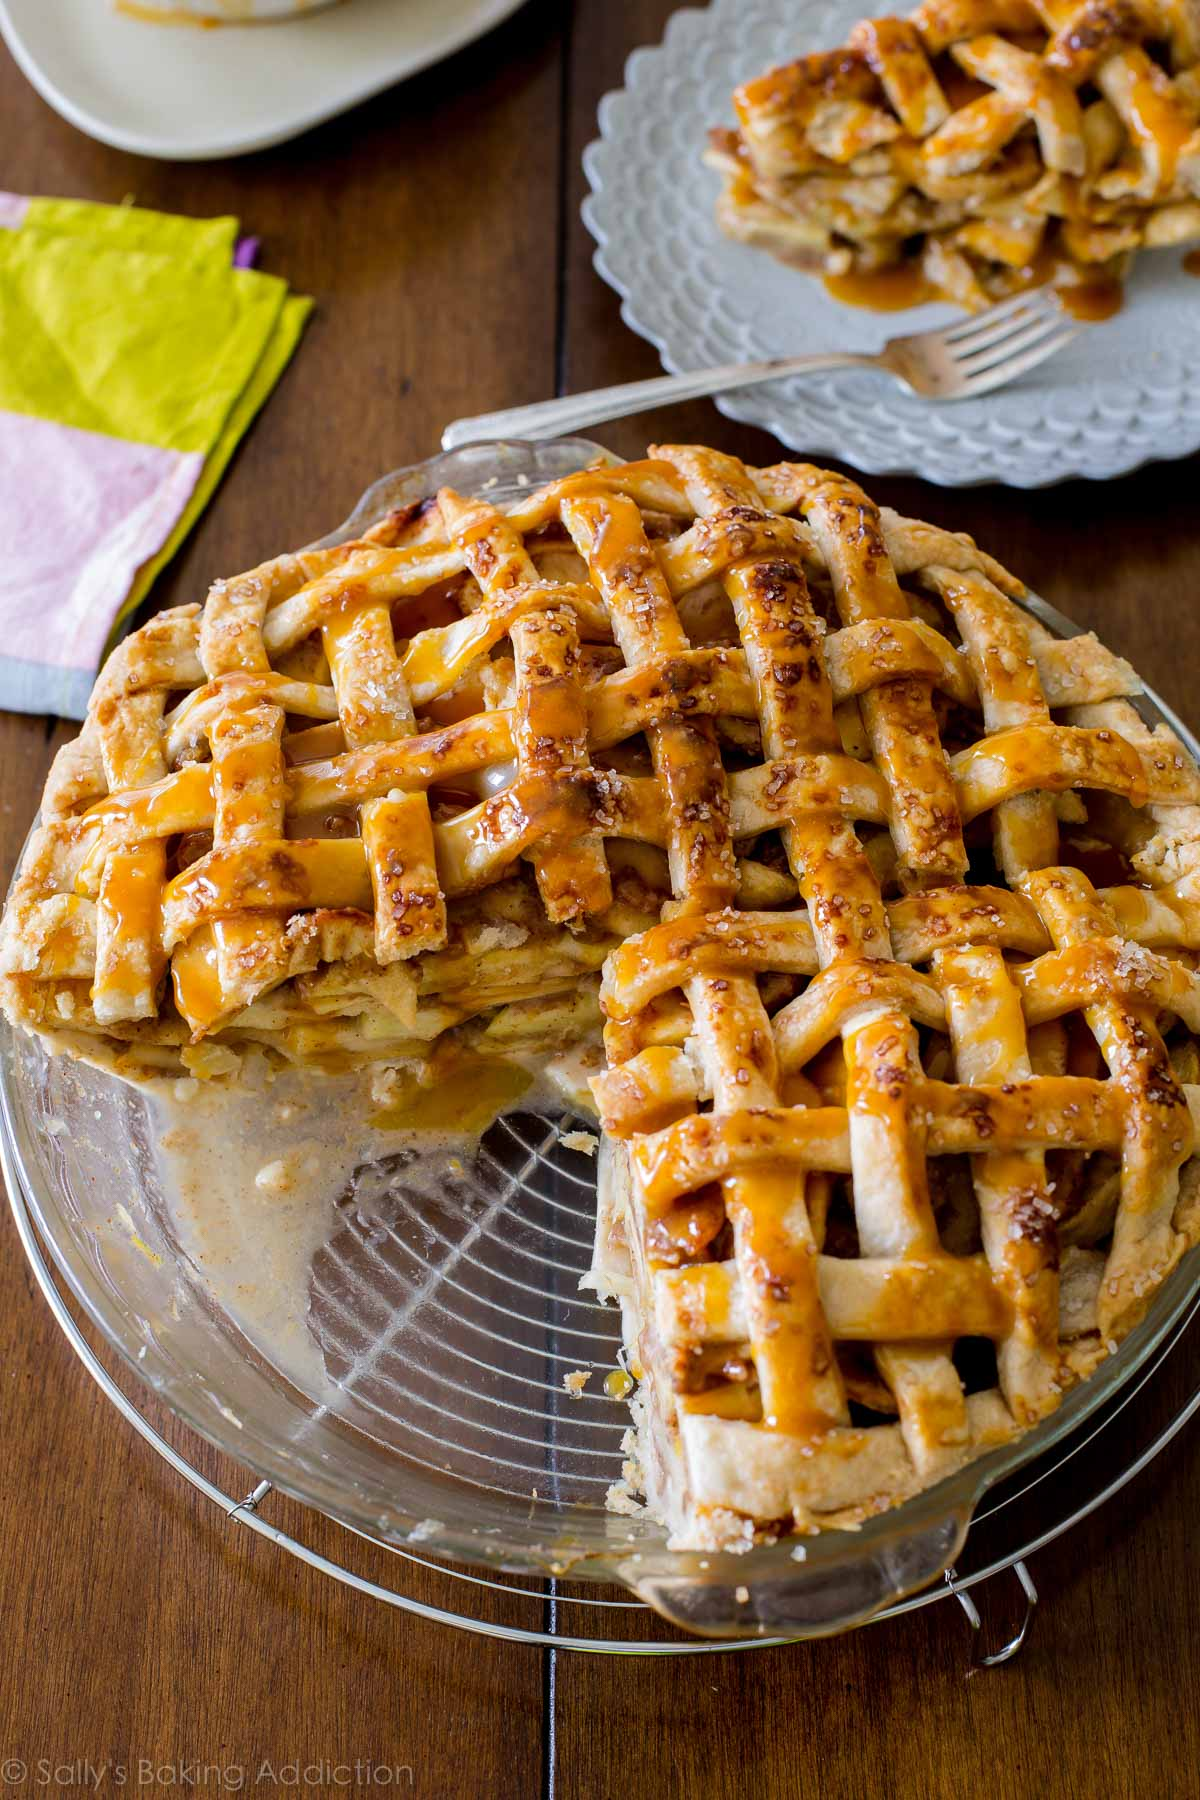 Here is a classic lattice-topped all American apple pie bubbling with salted caramel and gooey, cinnamon apples! Recipe on sallysbakingaddiction.com